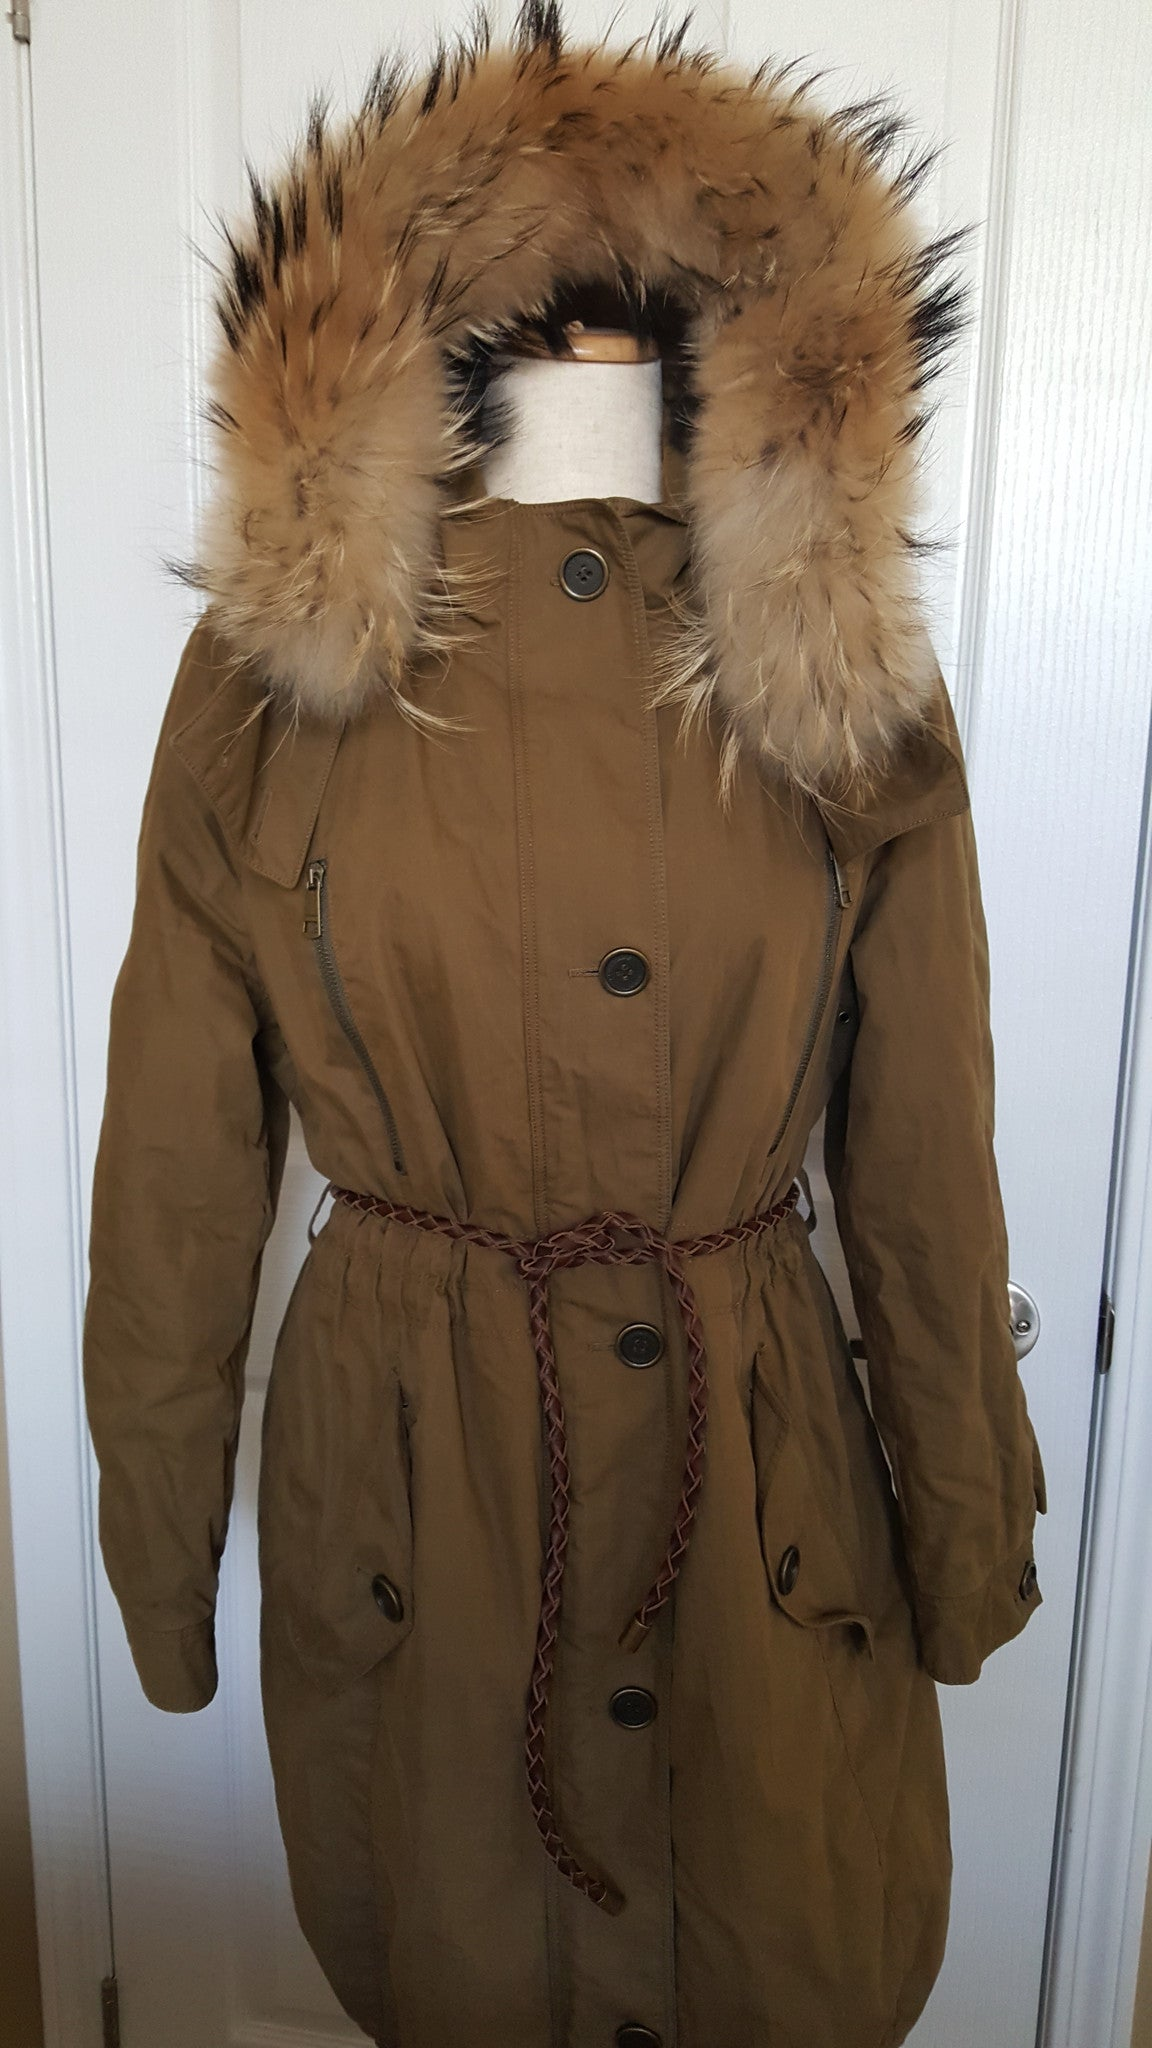 BURBERRY BRIT OLIVE GREEN COTTON JACKET WITH FUR TRIM COLLAR - SIZE US 8